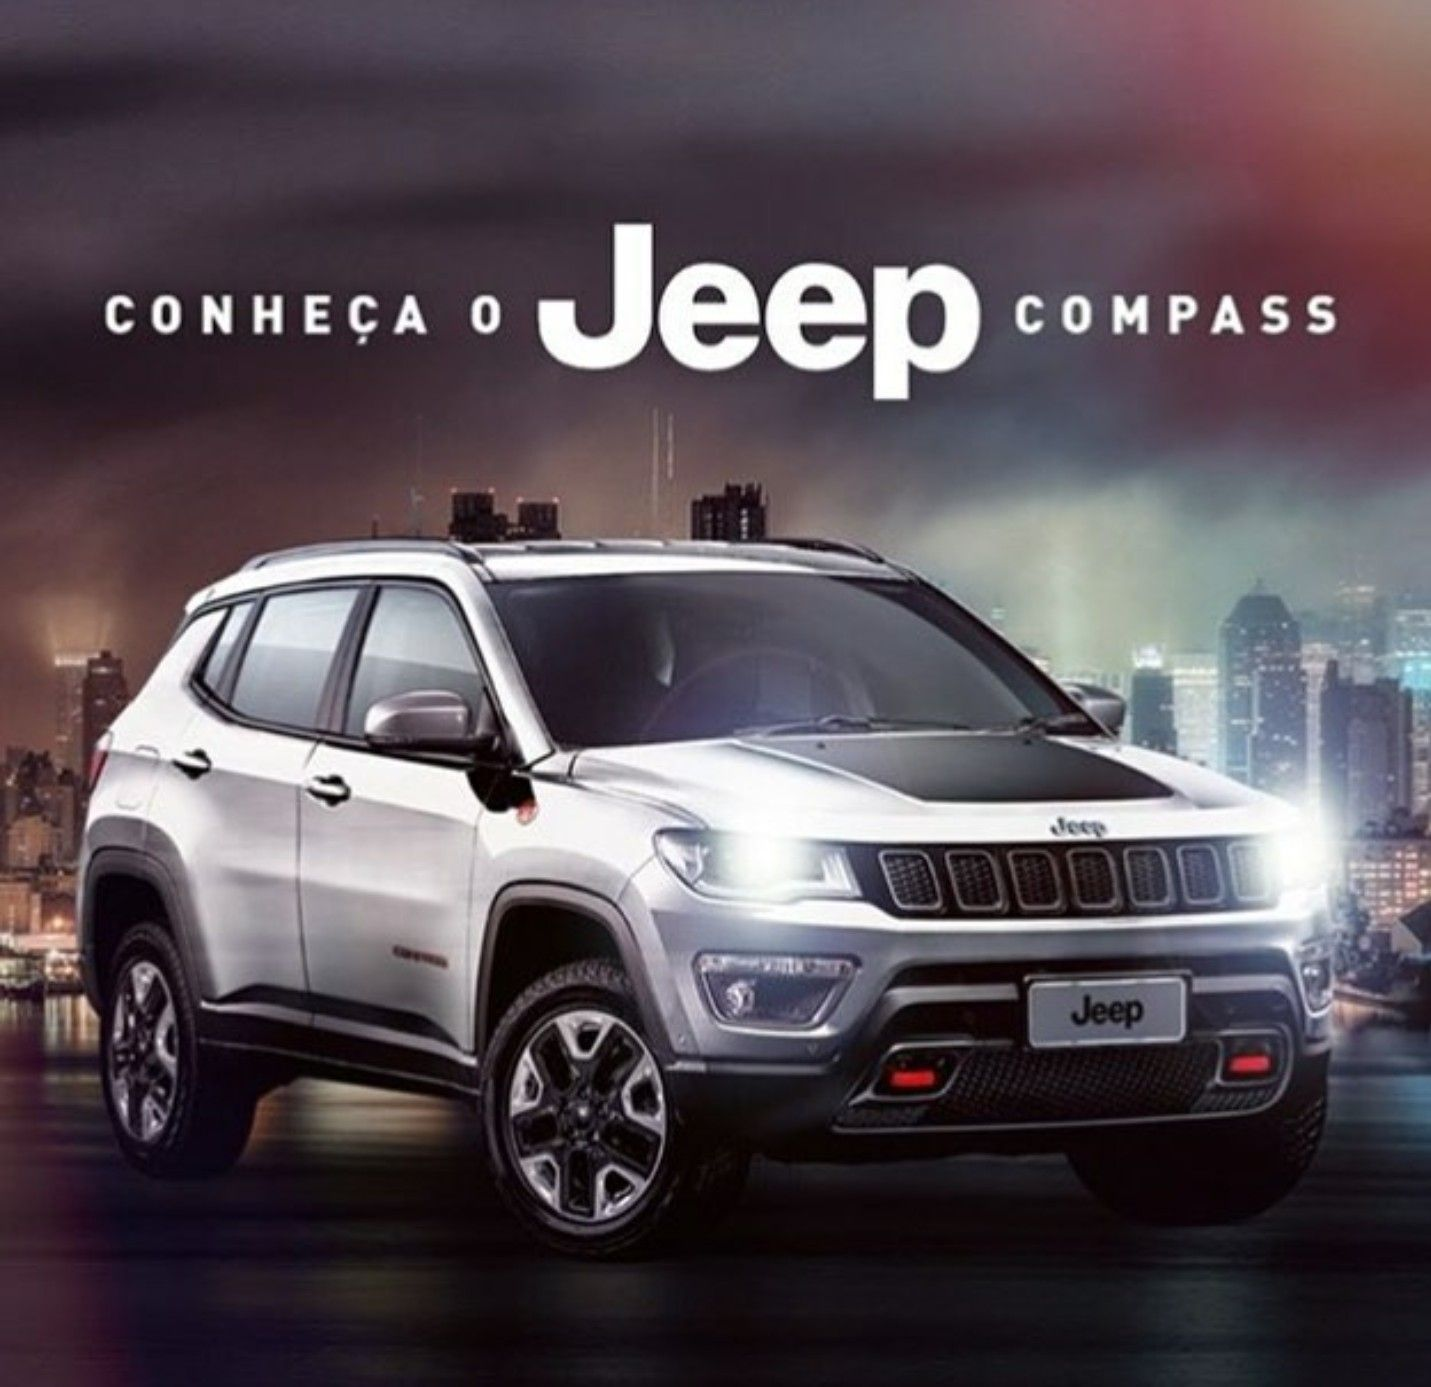 New Jeep Compass 2018 Jeep Compass Jeep Cars Jeep Renegade